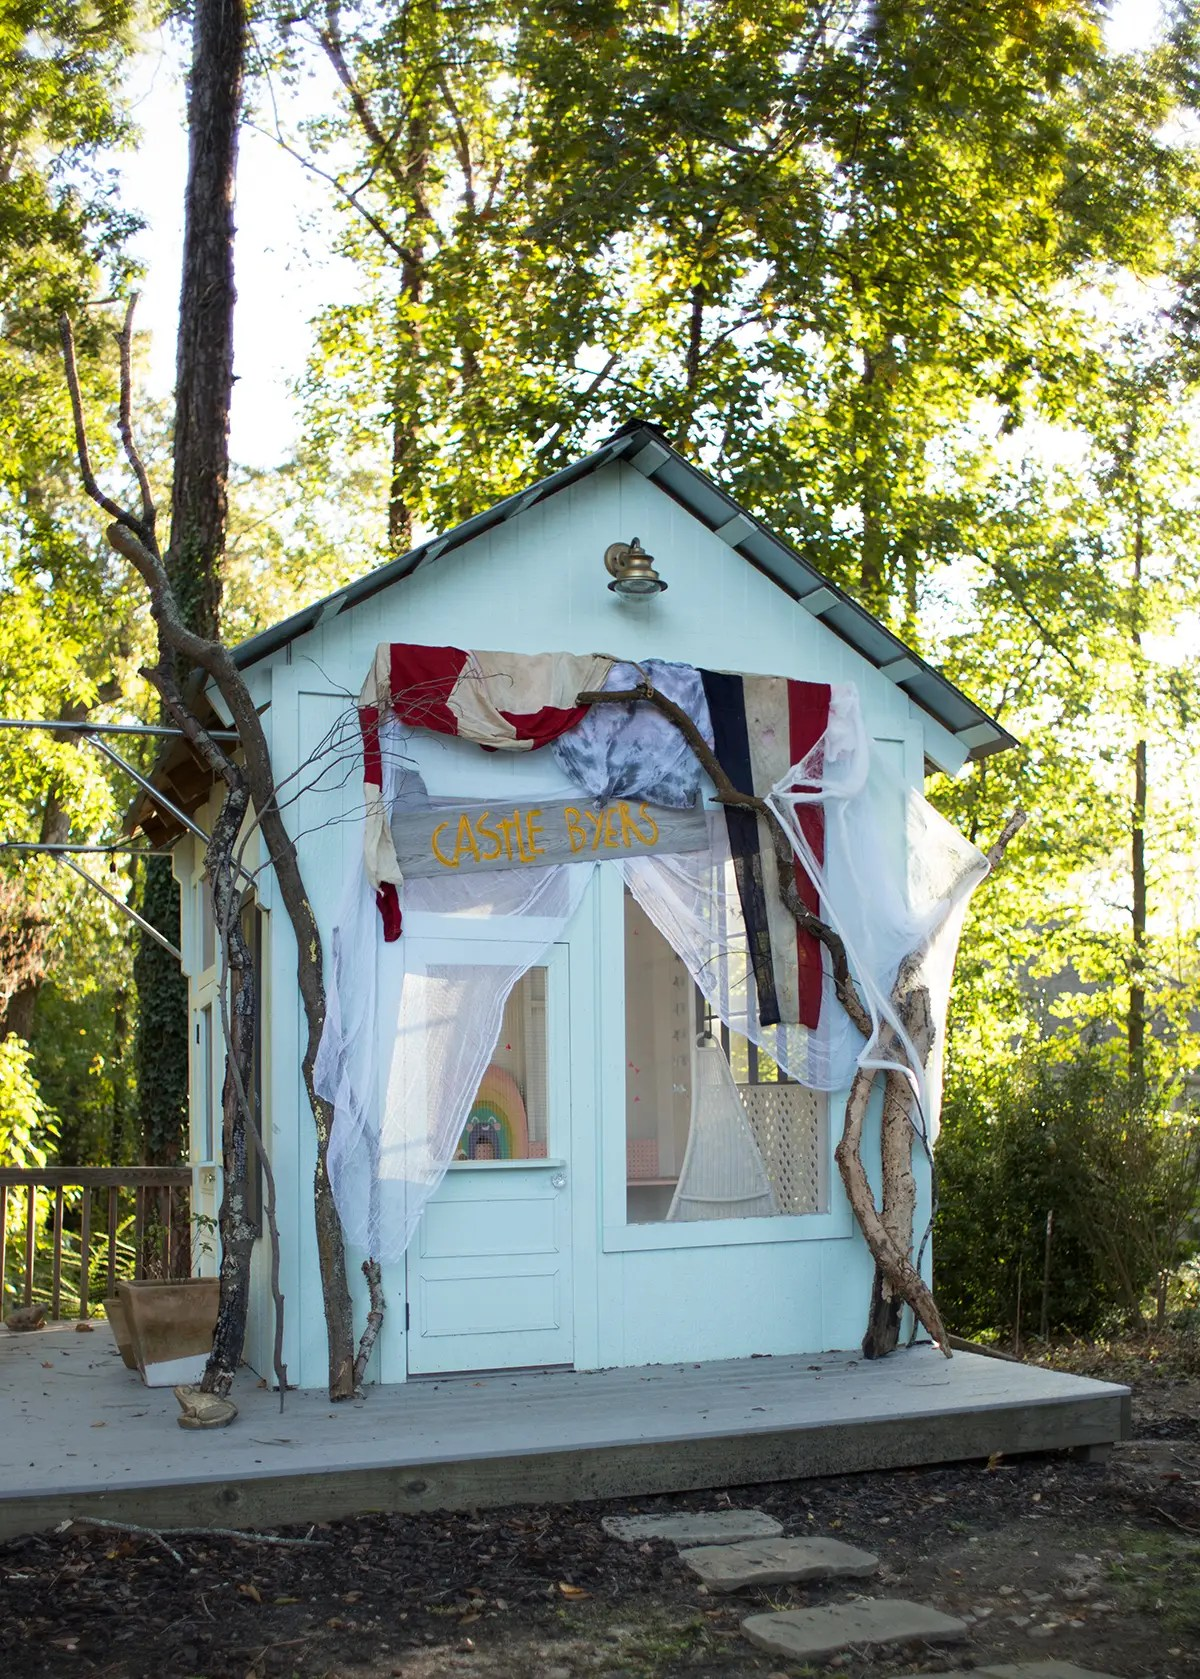 Stylized Stranger Things Party Decor Ideas How To Throw A Stranger Things Viewing Party Lay Baby Lay Backyard Party Shed Plans Backyard Party Shelter outdoor Backyard Party Shed